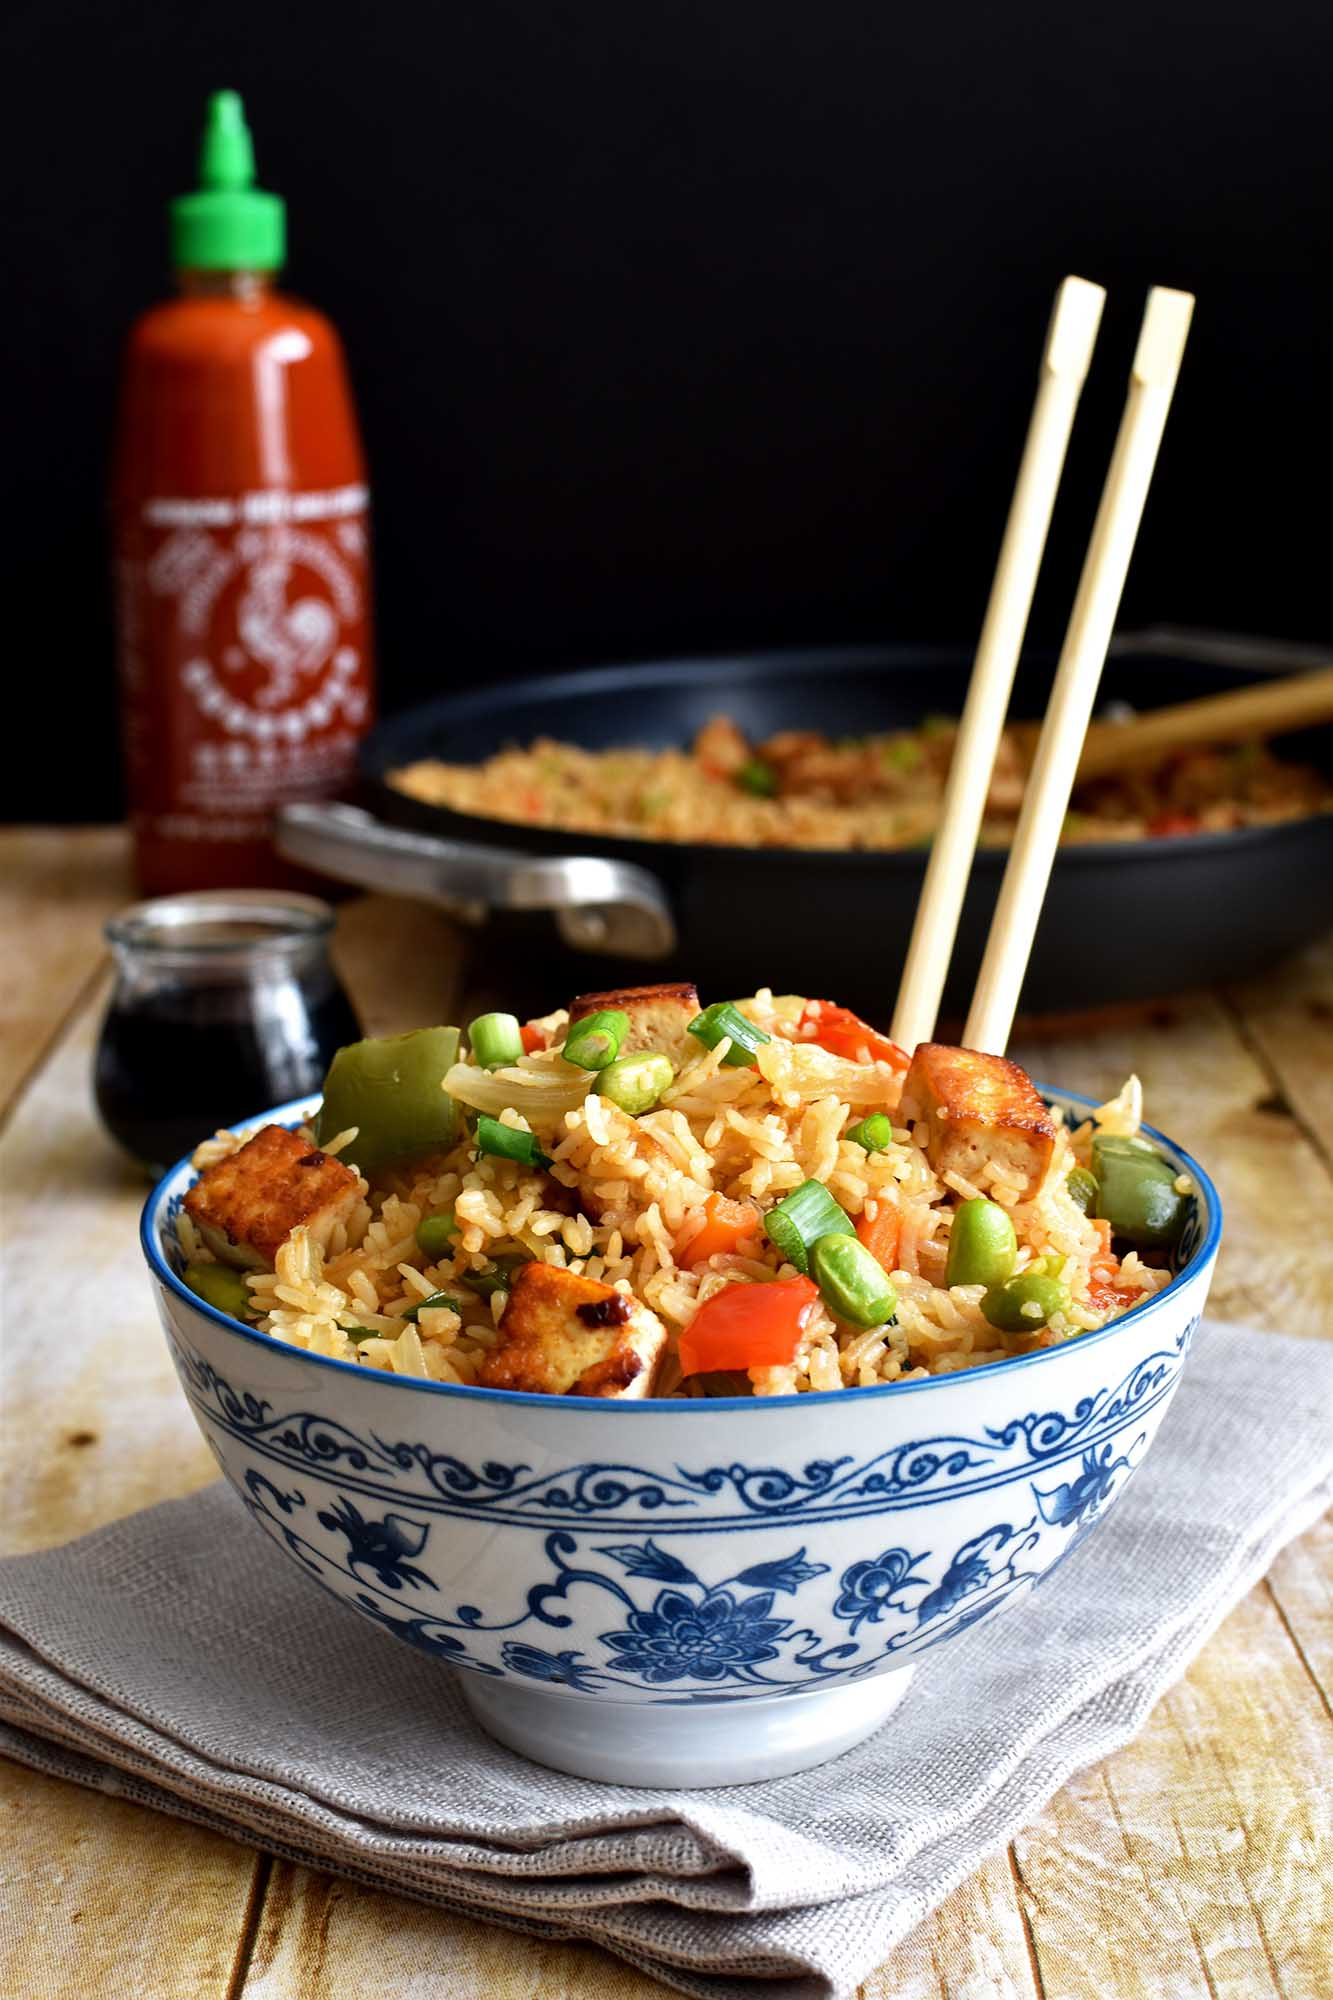 Tofu fried rice - Pepper Delight #pepperdelightblog #recipe #tofu #friedrice #asian #meatless #chinese #thai #edamame #vegeterian #easy #30minutesrecipes